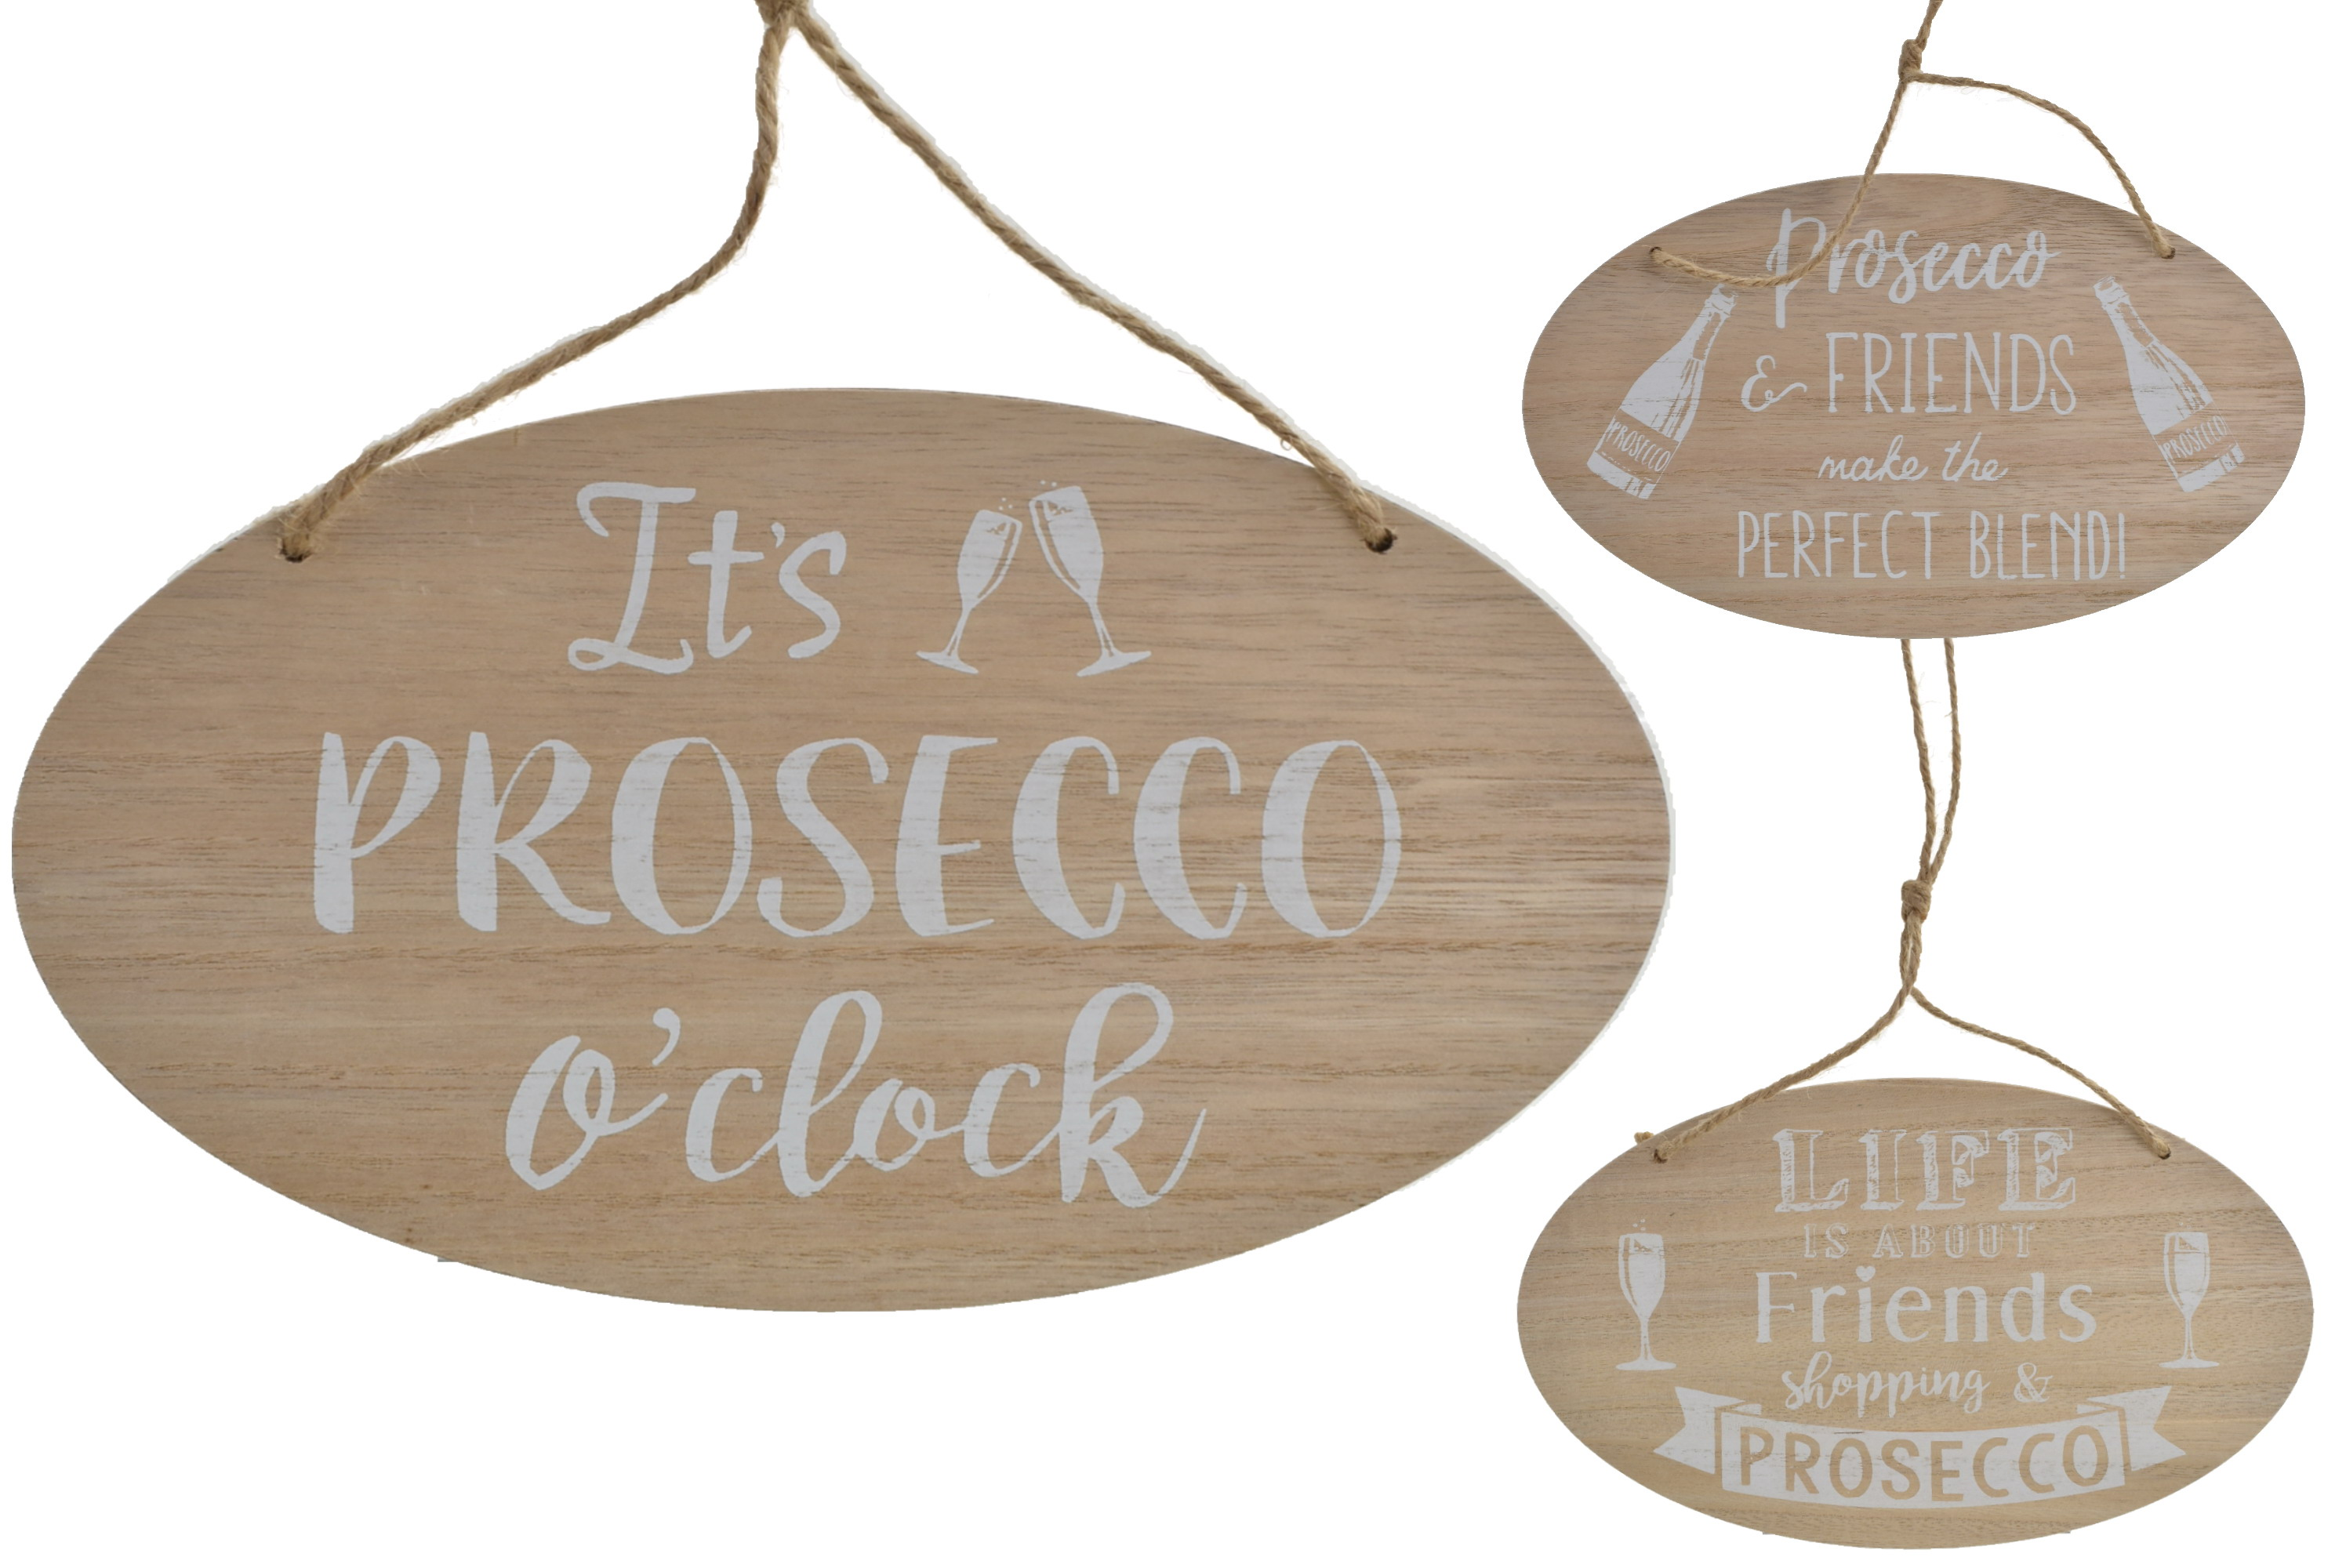 25x15cm Wooden Hanging Oval Sign Prosecco Design 3 Asst